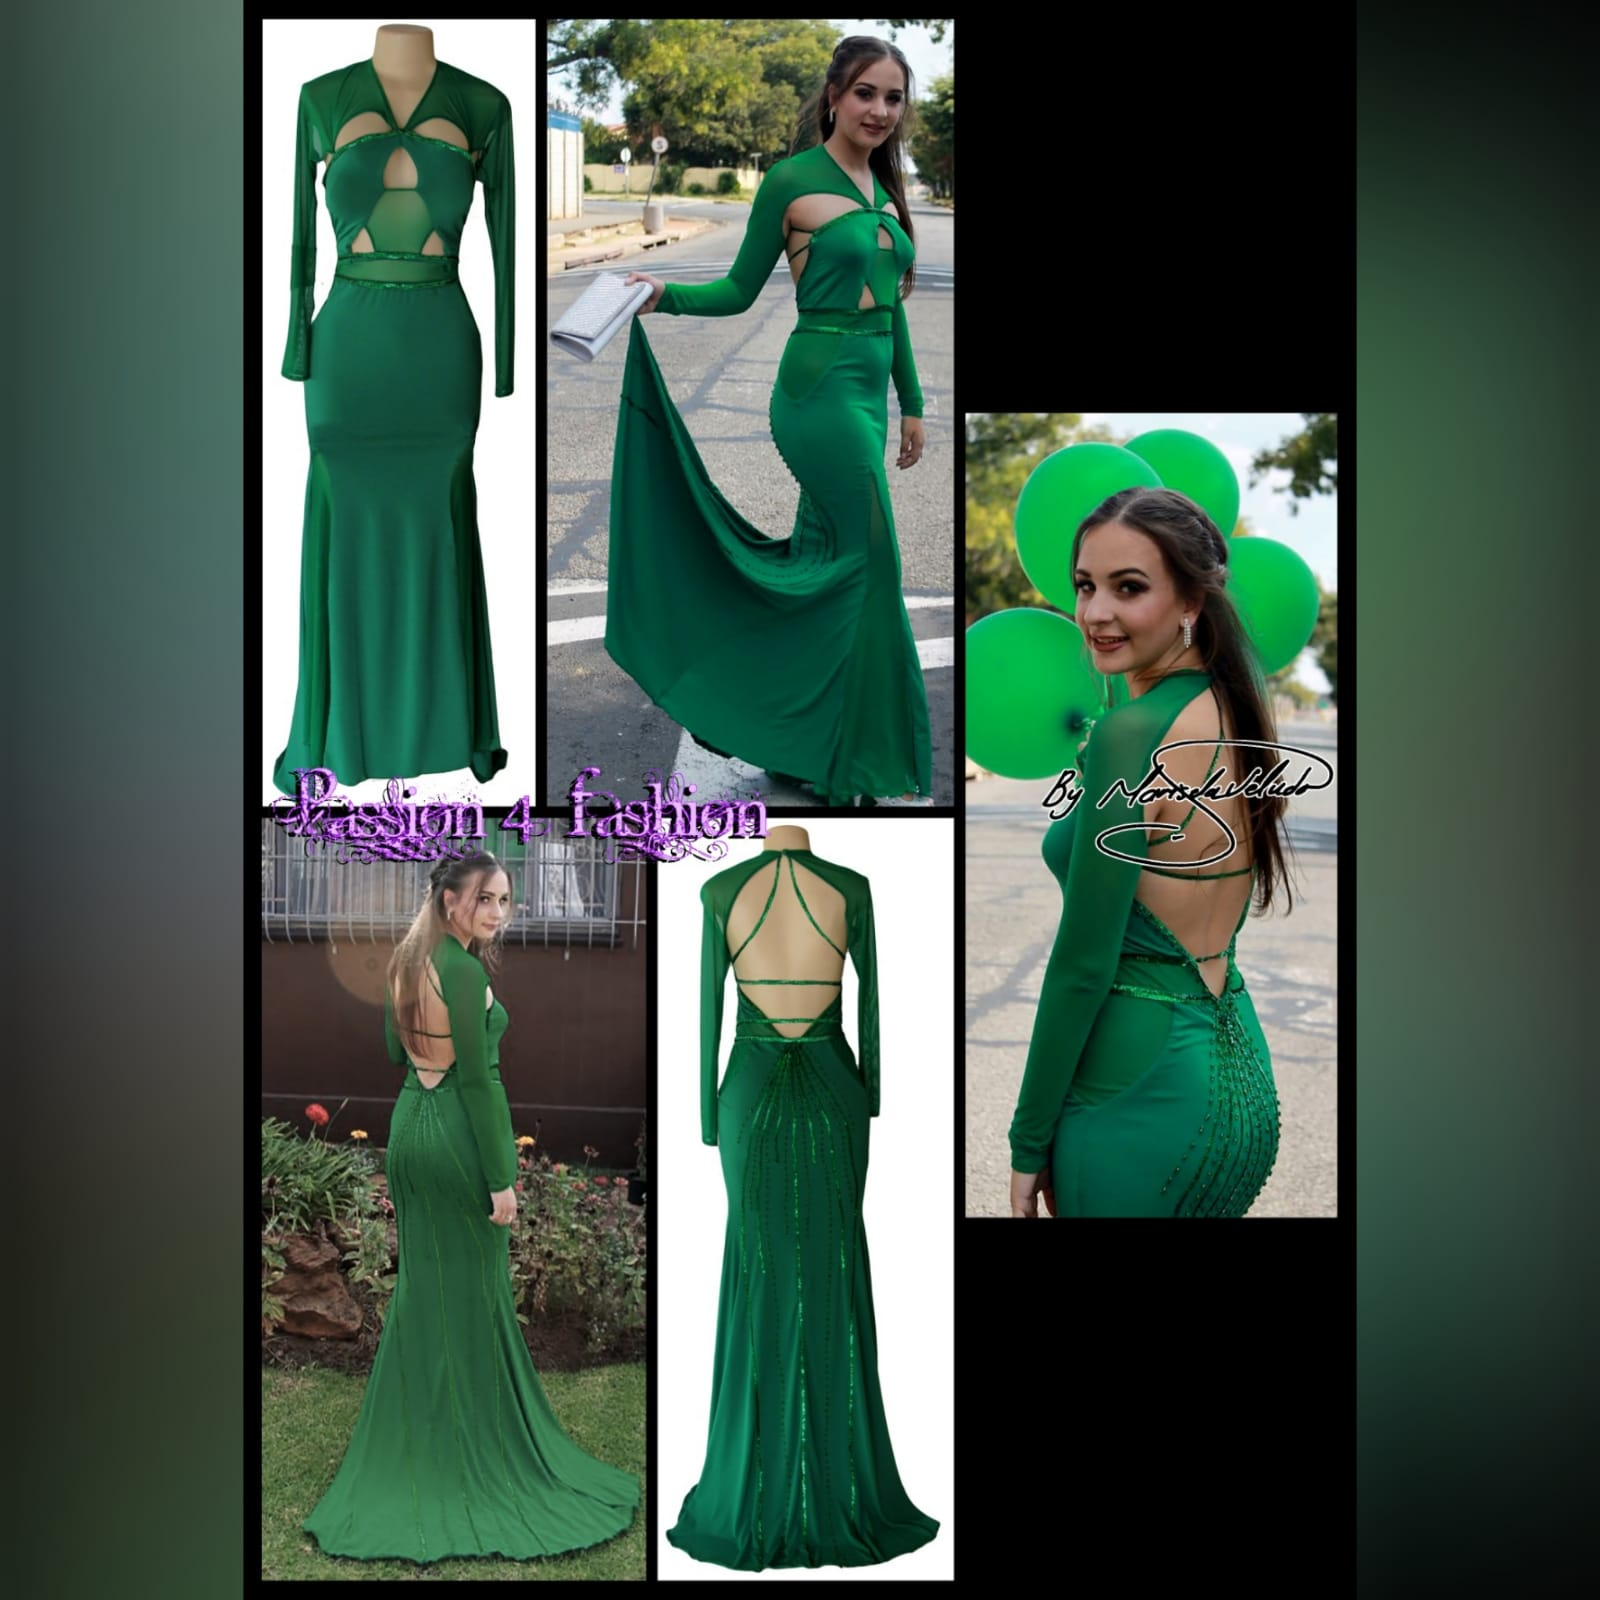 Green soft mermaid sexy unique evening dress 5 green soft mermaid sexy unique evening dress. Long sleeves, shoulders and leg panels in a slightly translucent fabric. A low open back detailed with sequins and beads.